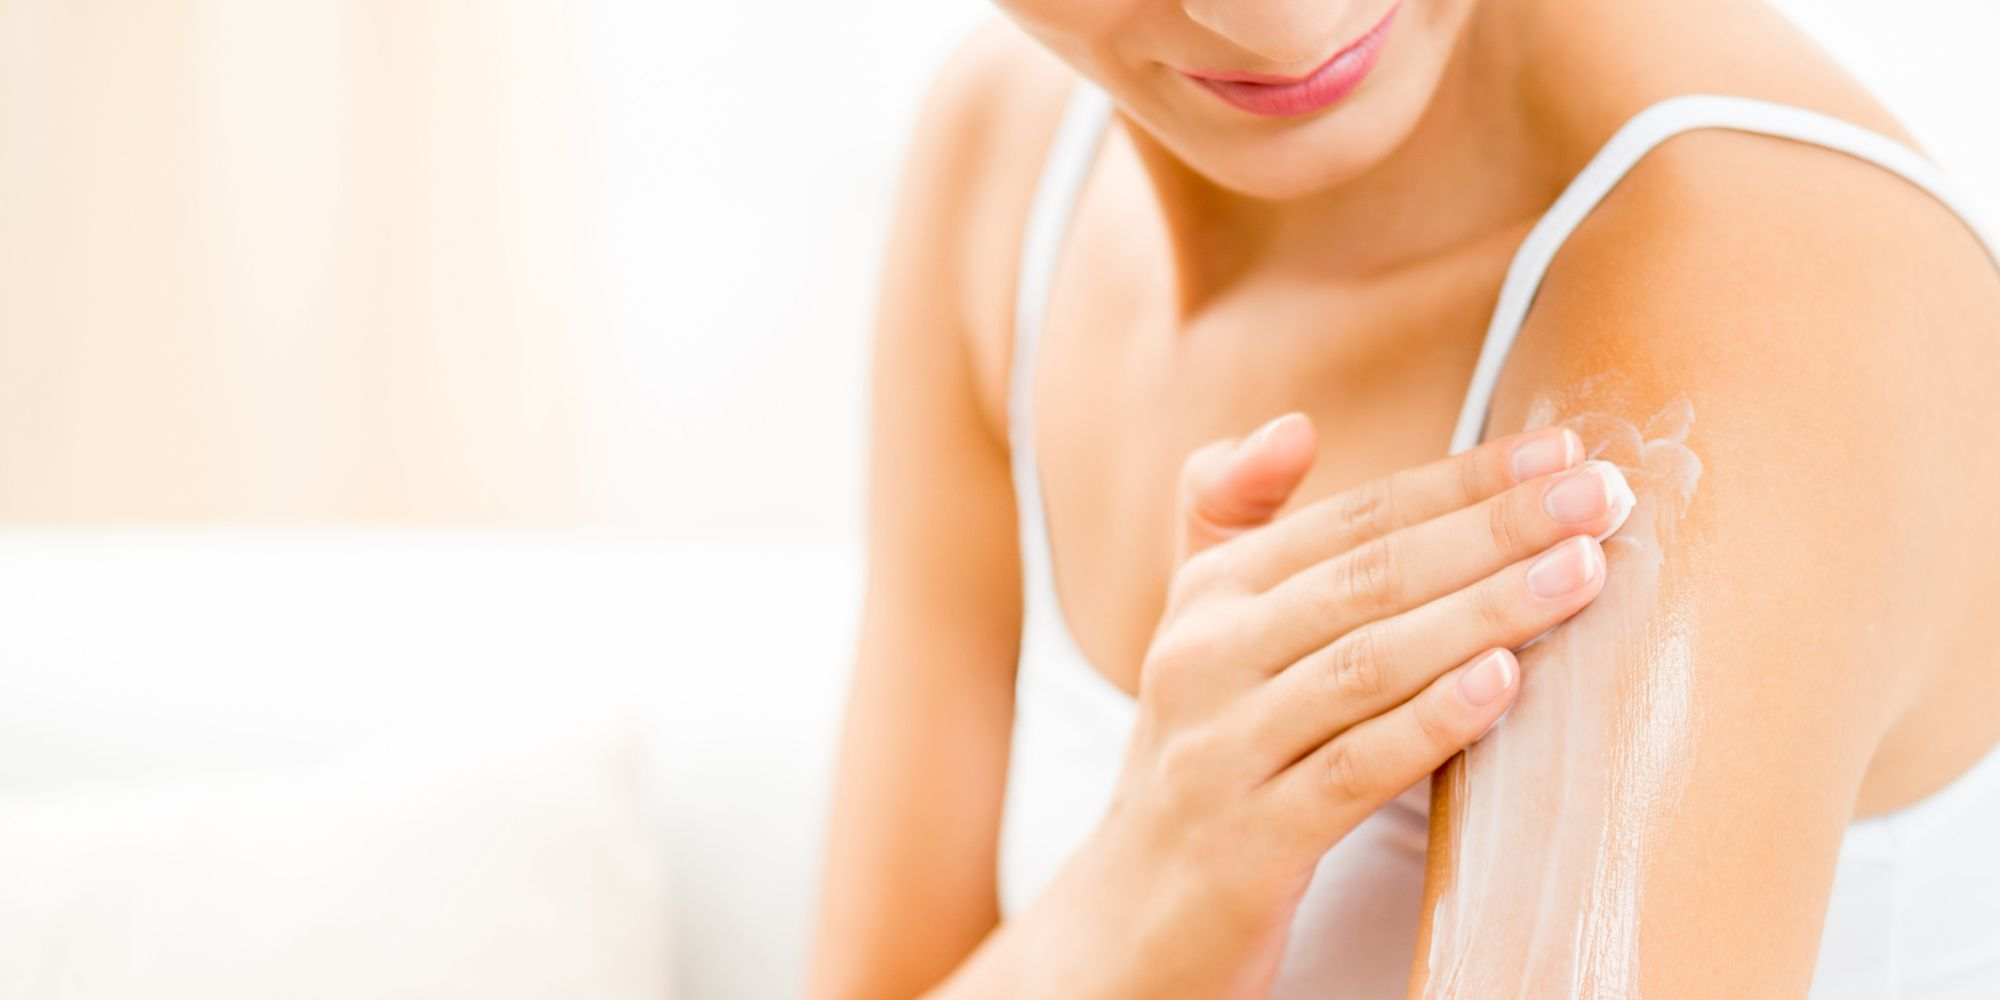 Lotion Treated With Bacteria Could Help Prevent Skin Infections